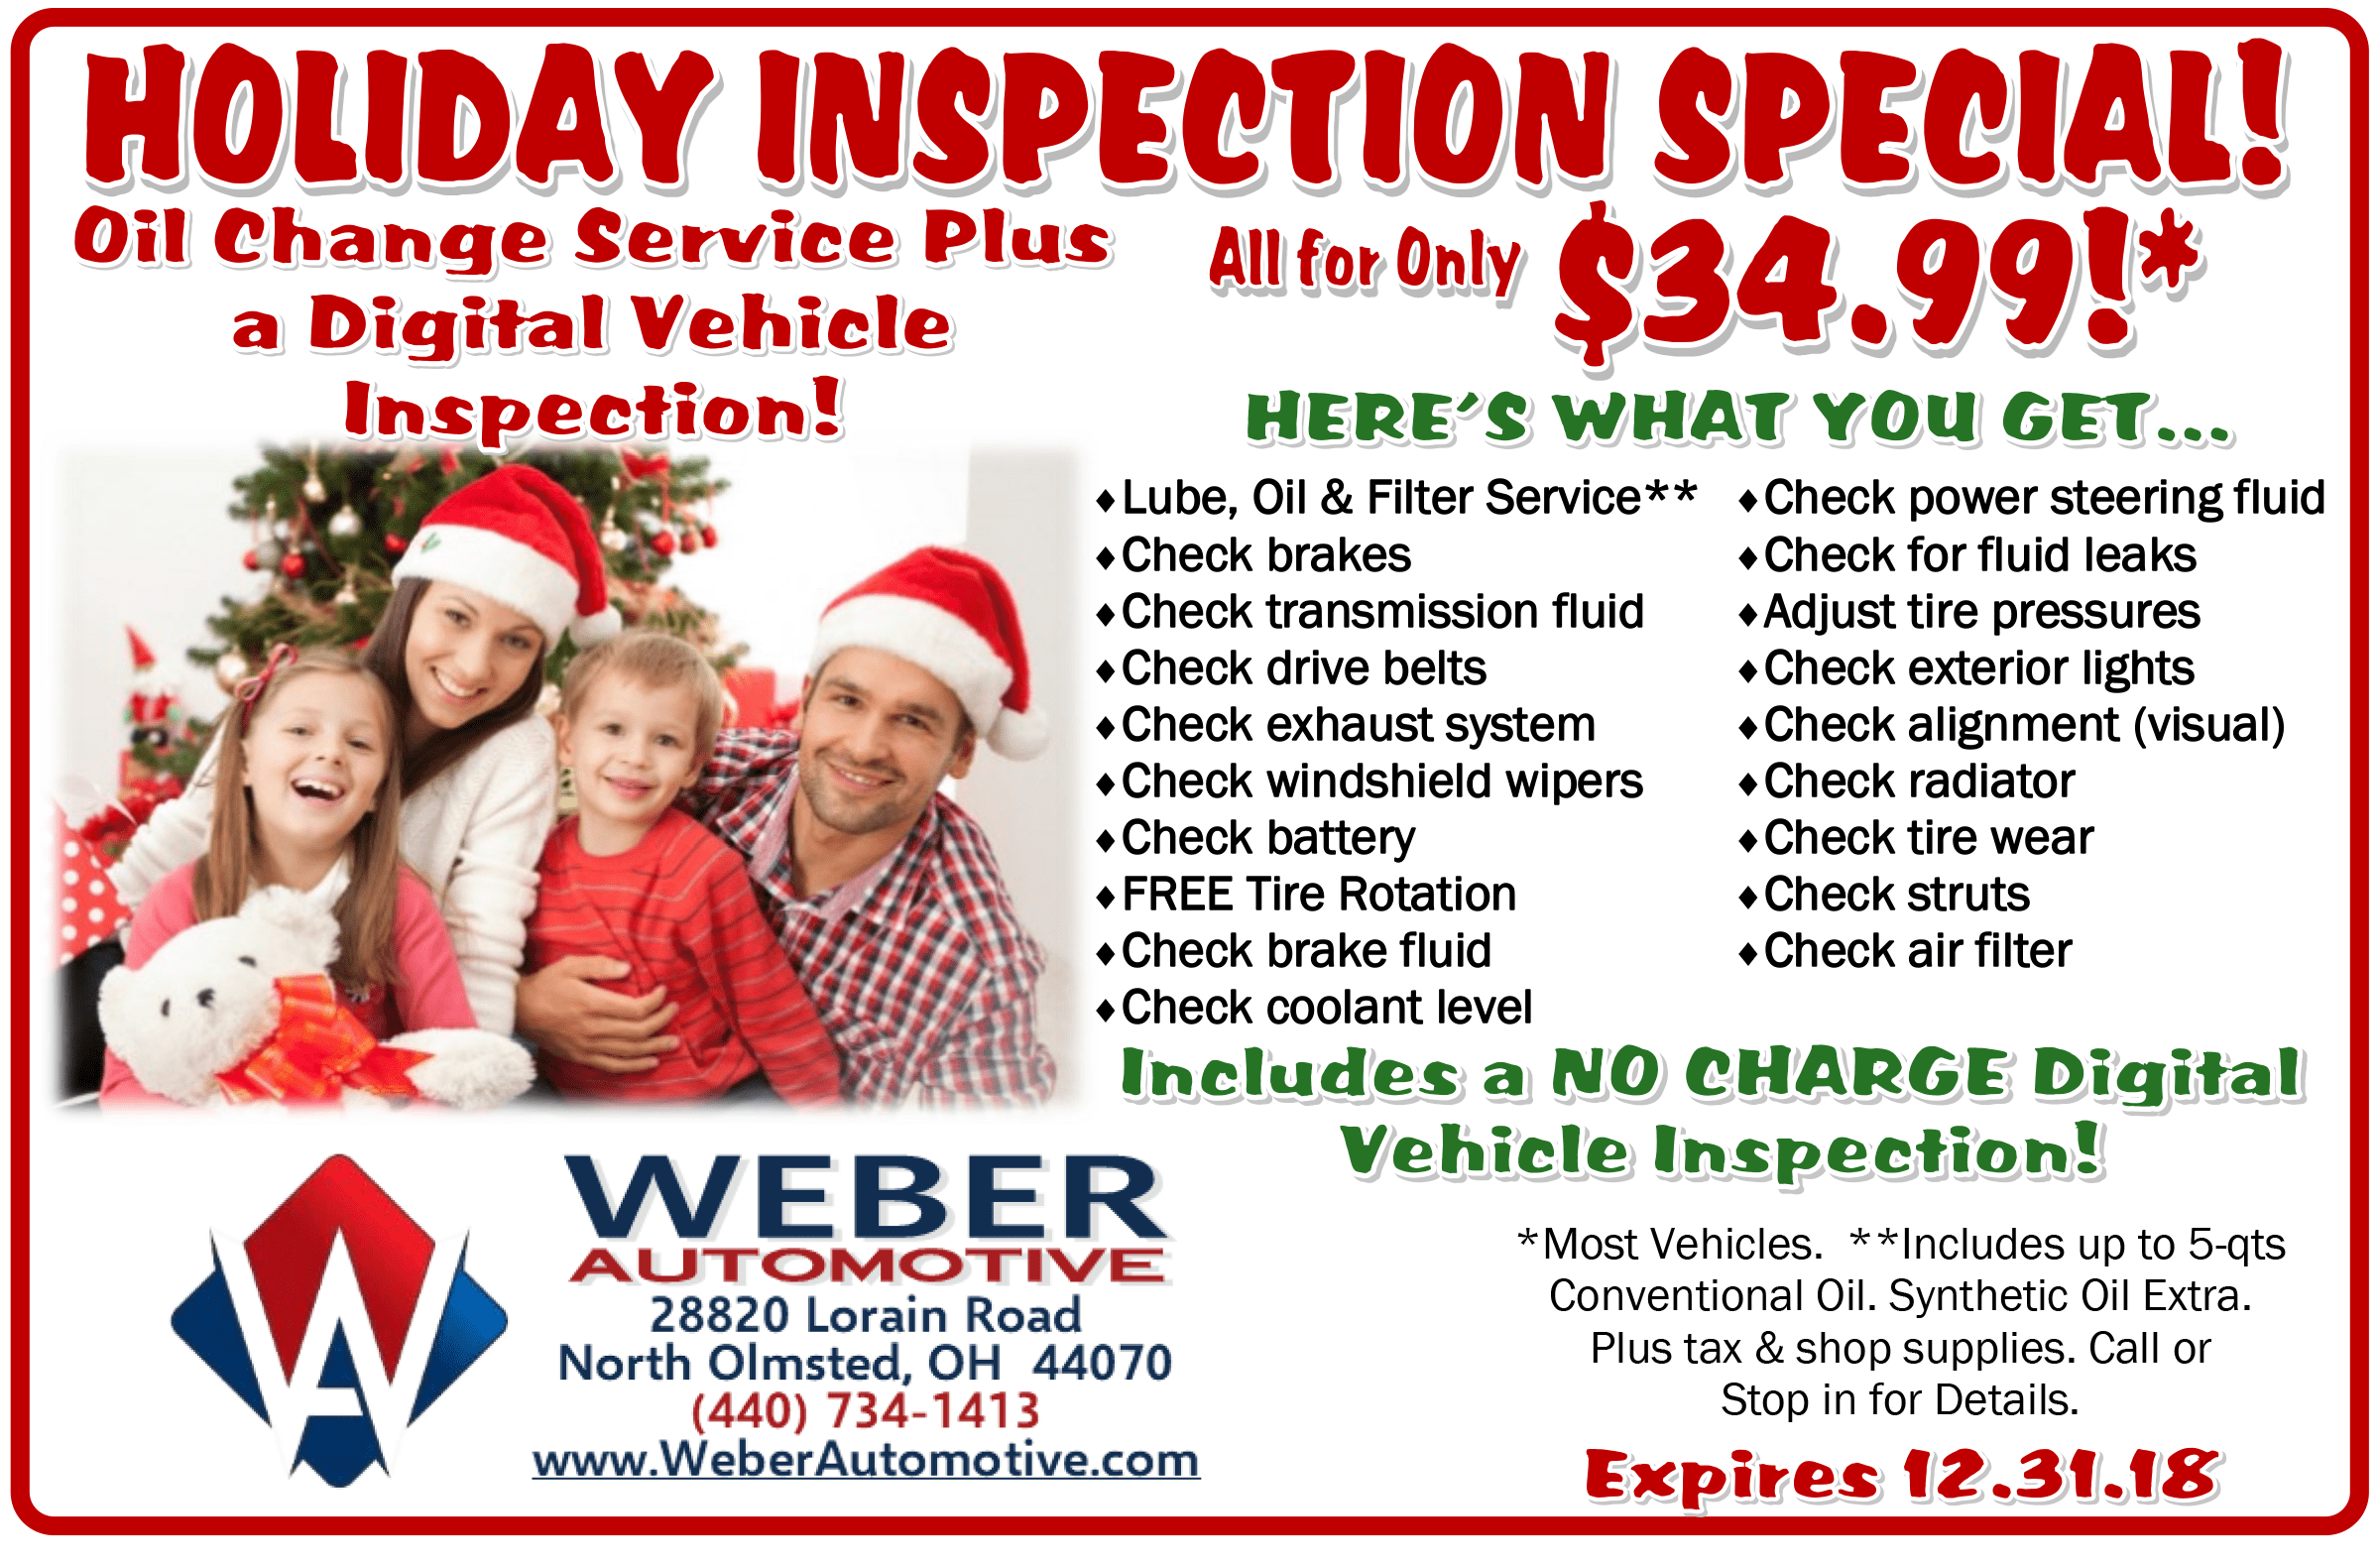 Holiday Inspection Specials